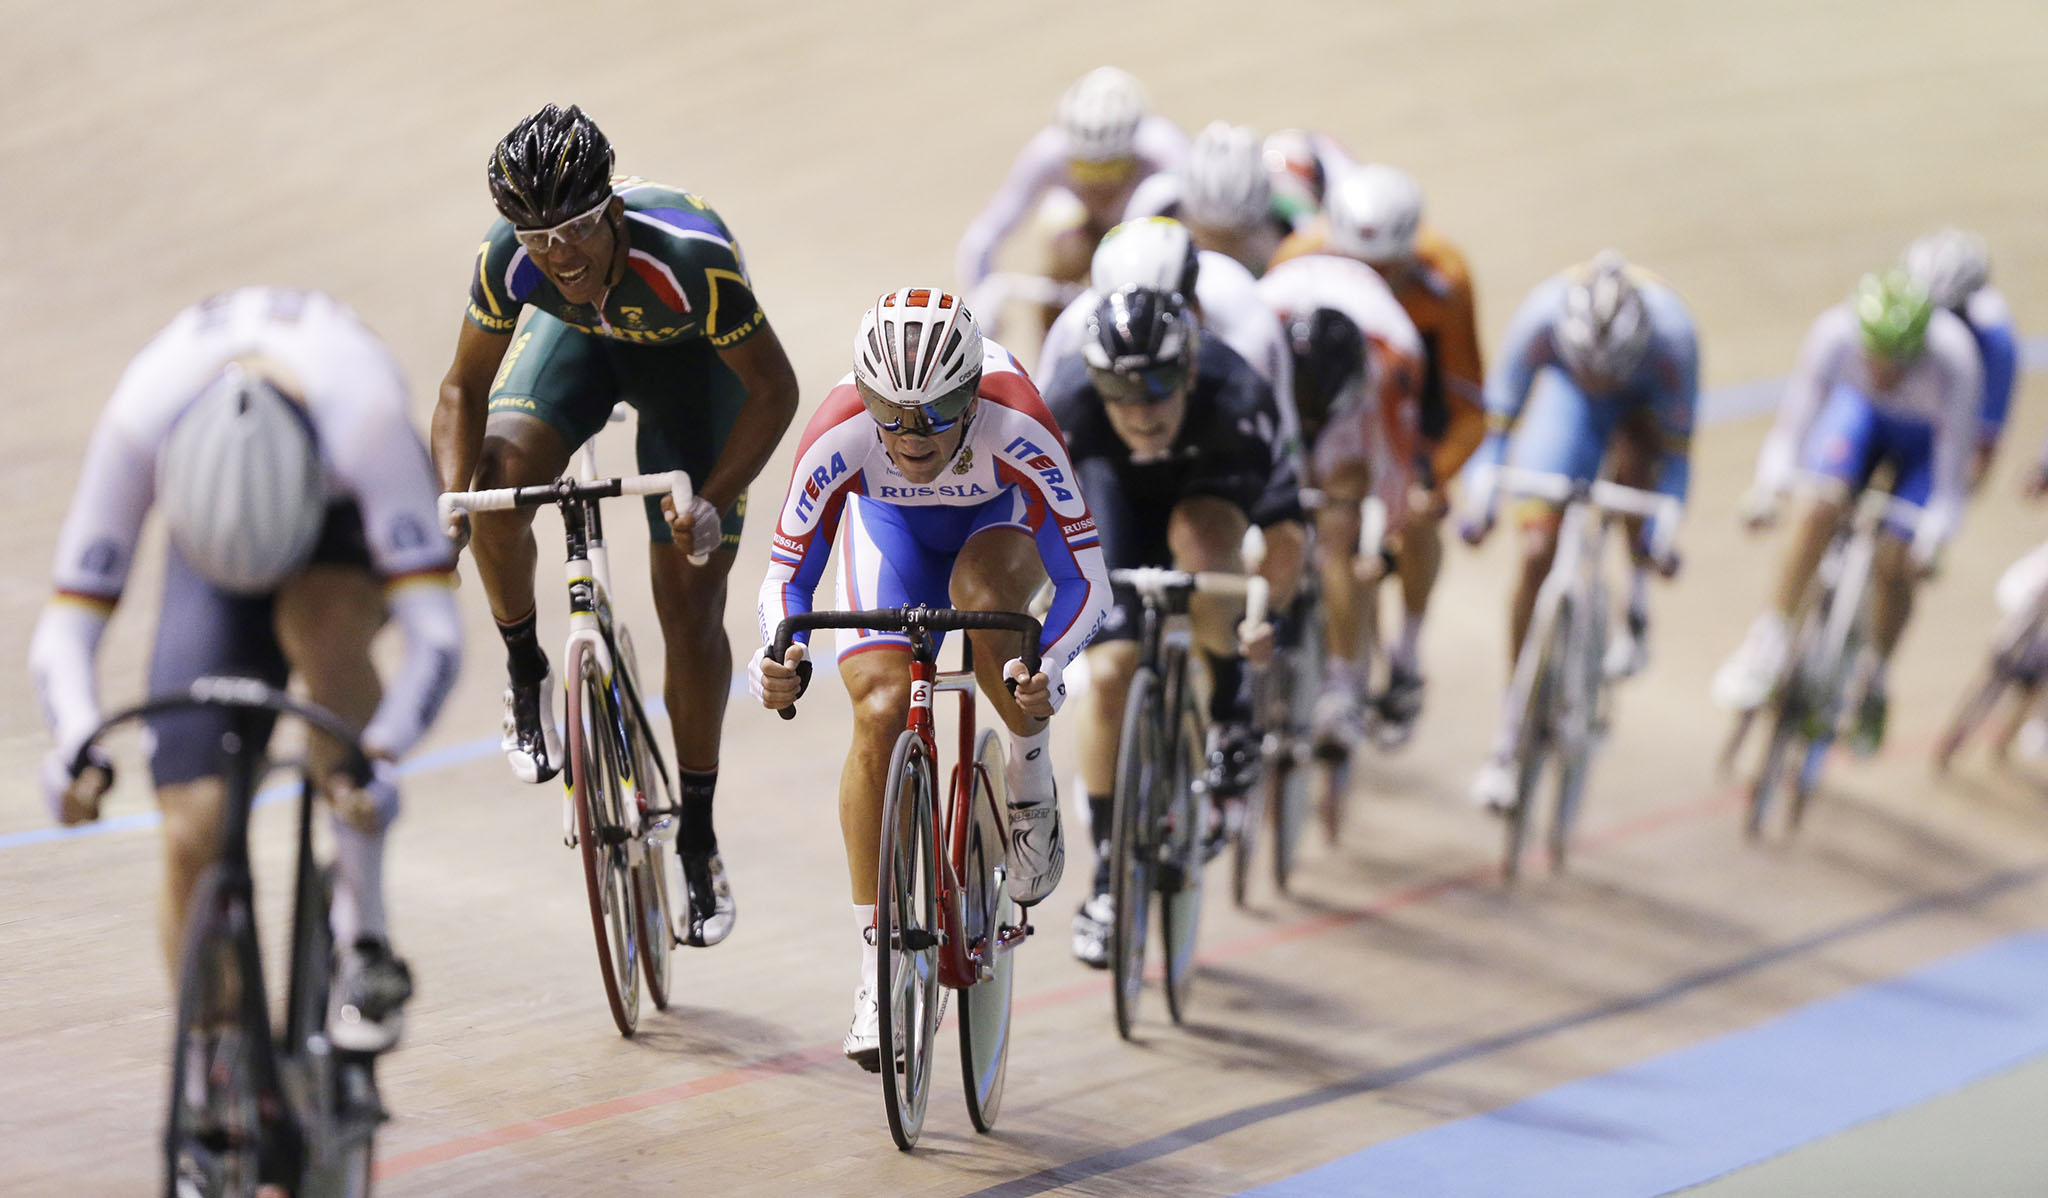 Russia's Ivan Kovalev, third from left, competes to win the gold in the men's scratch race at the Track Cycling World Championships in Cali, Colombia, Thursday, Feb. 27, 2014. (AP Photo/Fernando Vergara)